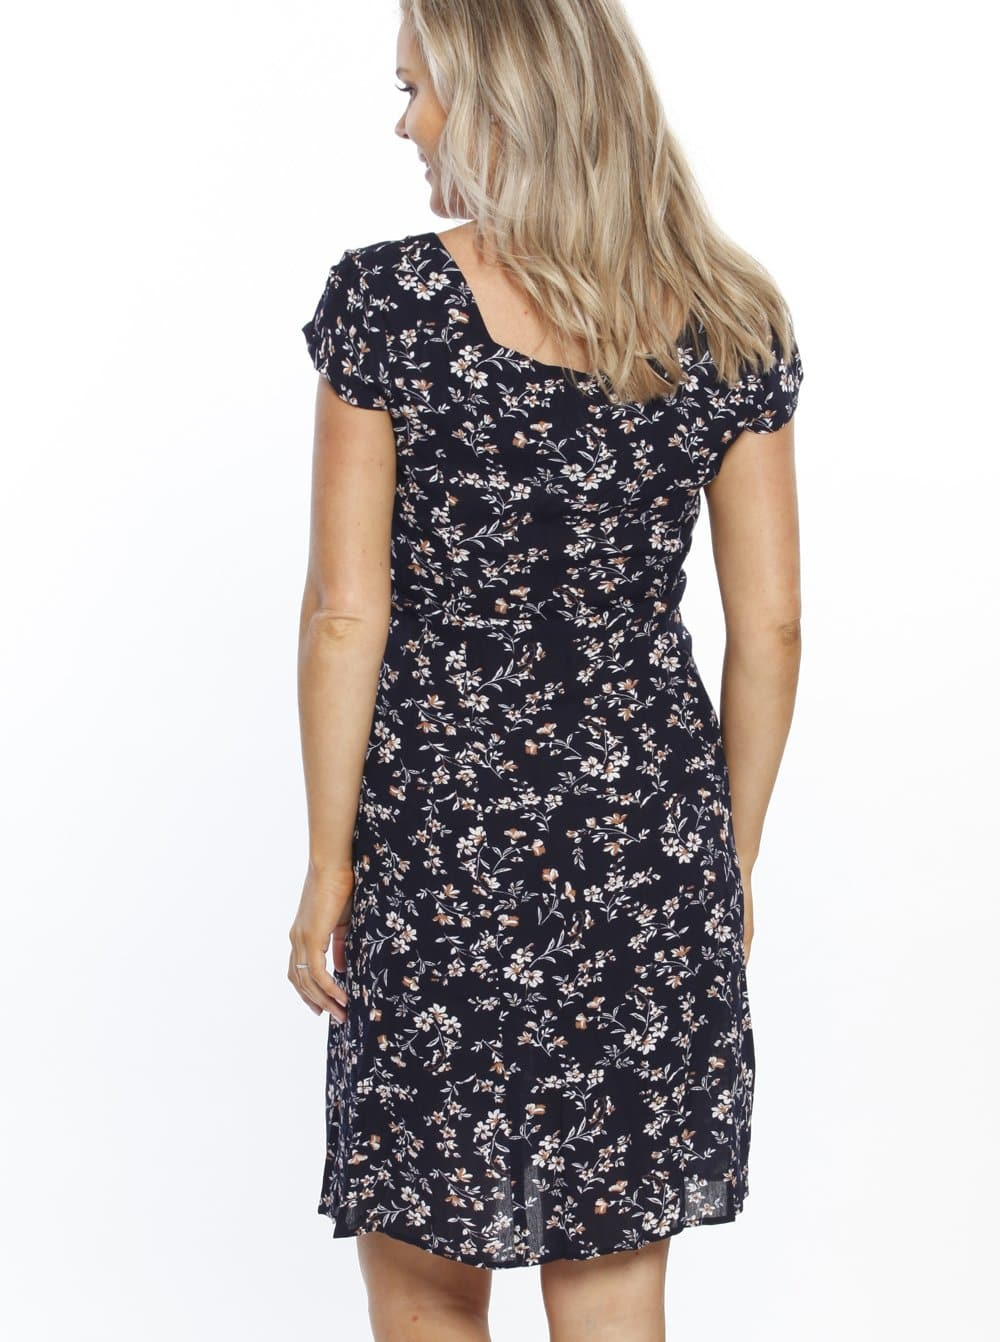 Maternity Sweet Tie Cotton Dress - Navy Floral Print